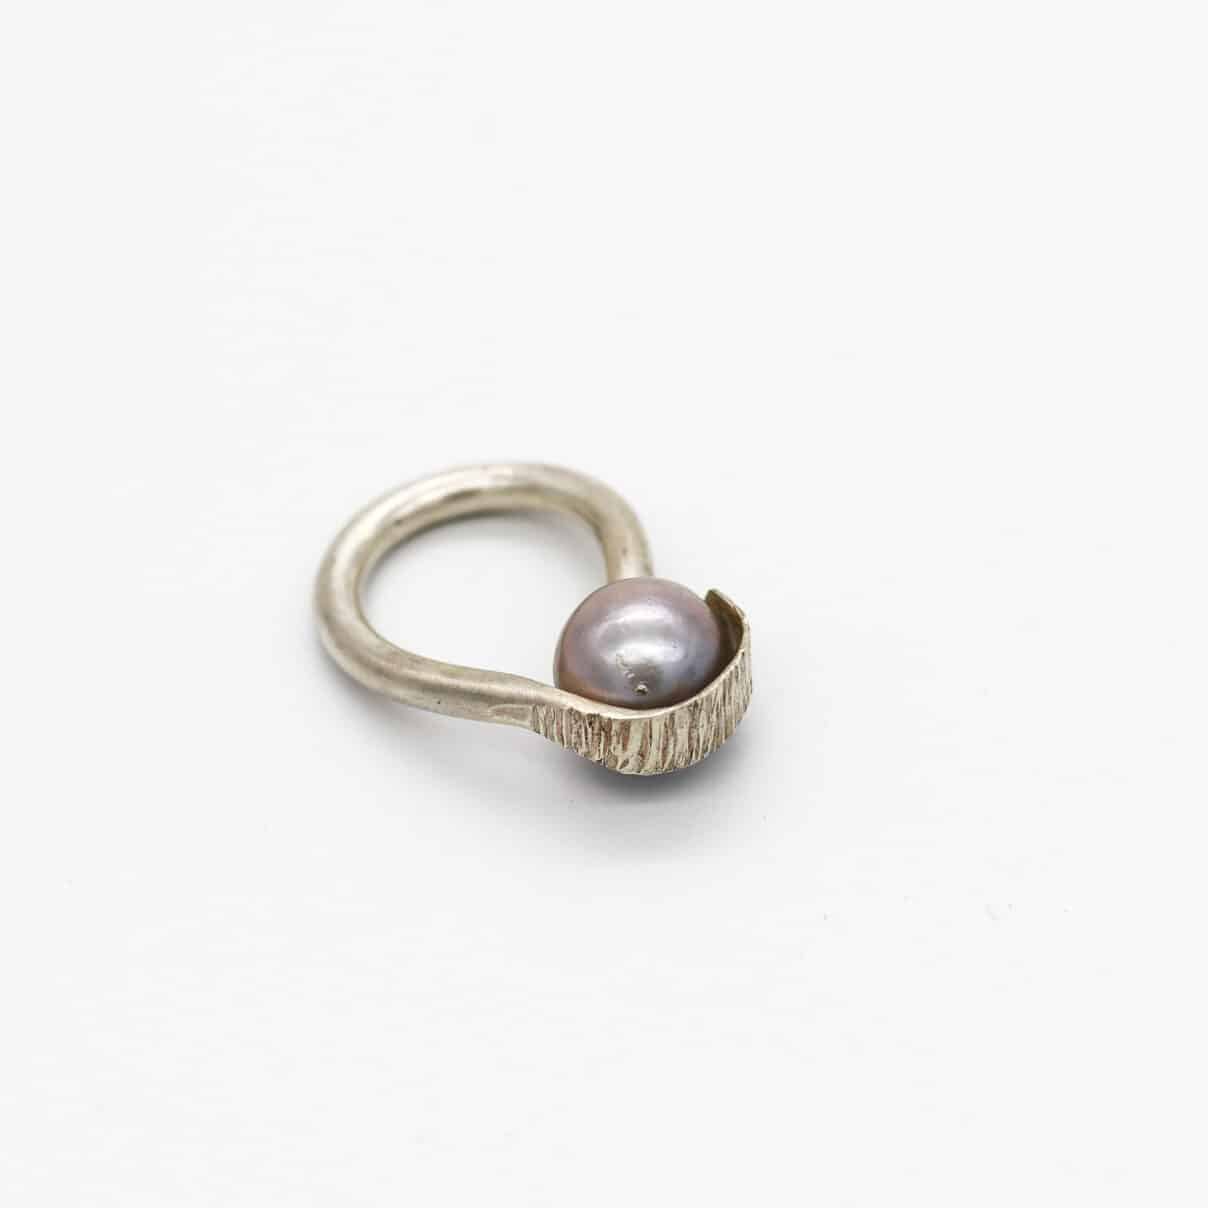 Hammered STG Ring With Black Pearl By Of That Ilk